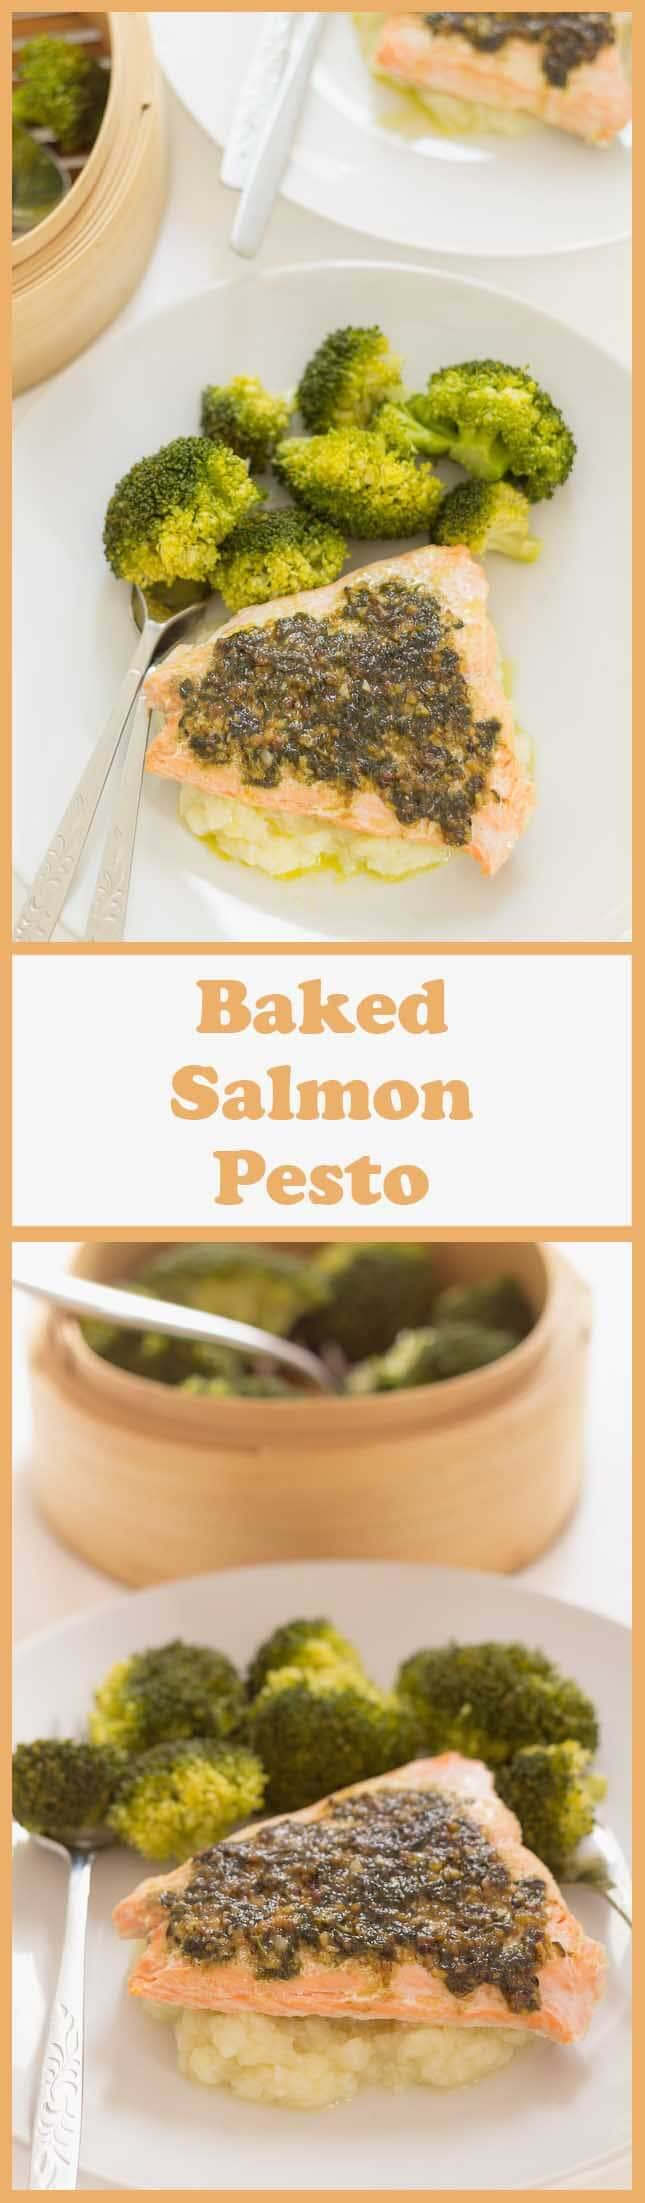 This Oven Baked Salmon Pesto Is Ready In Just 30 Minutes Andes With A  Creamy